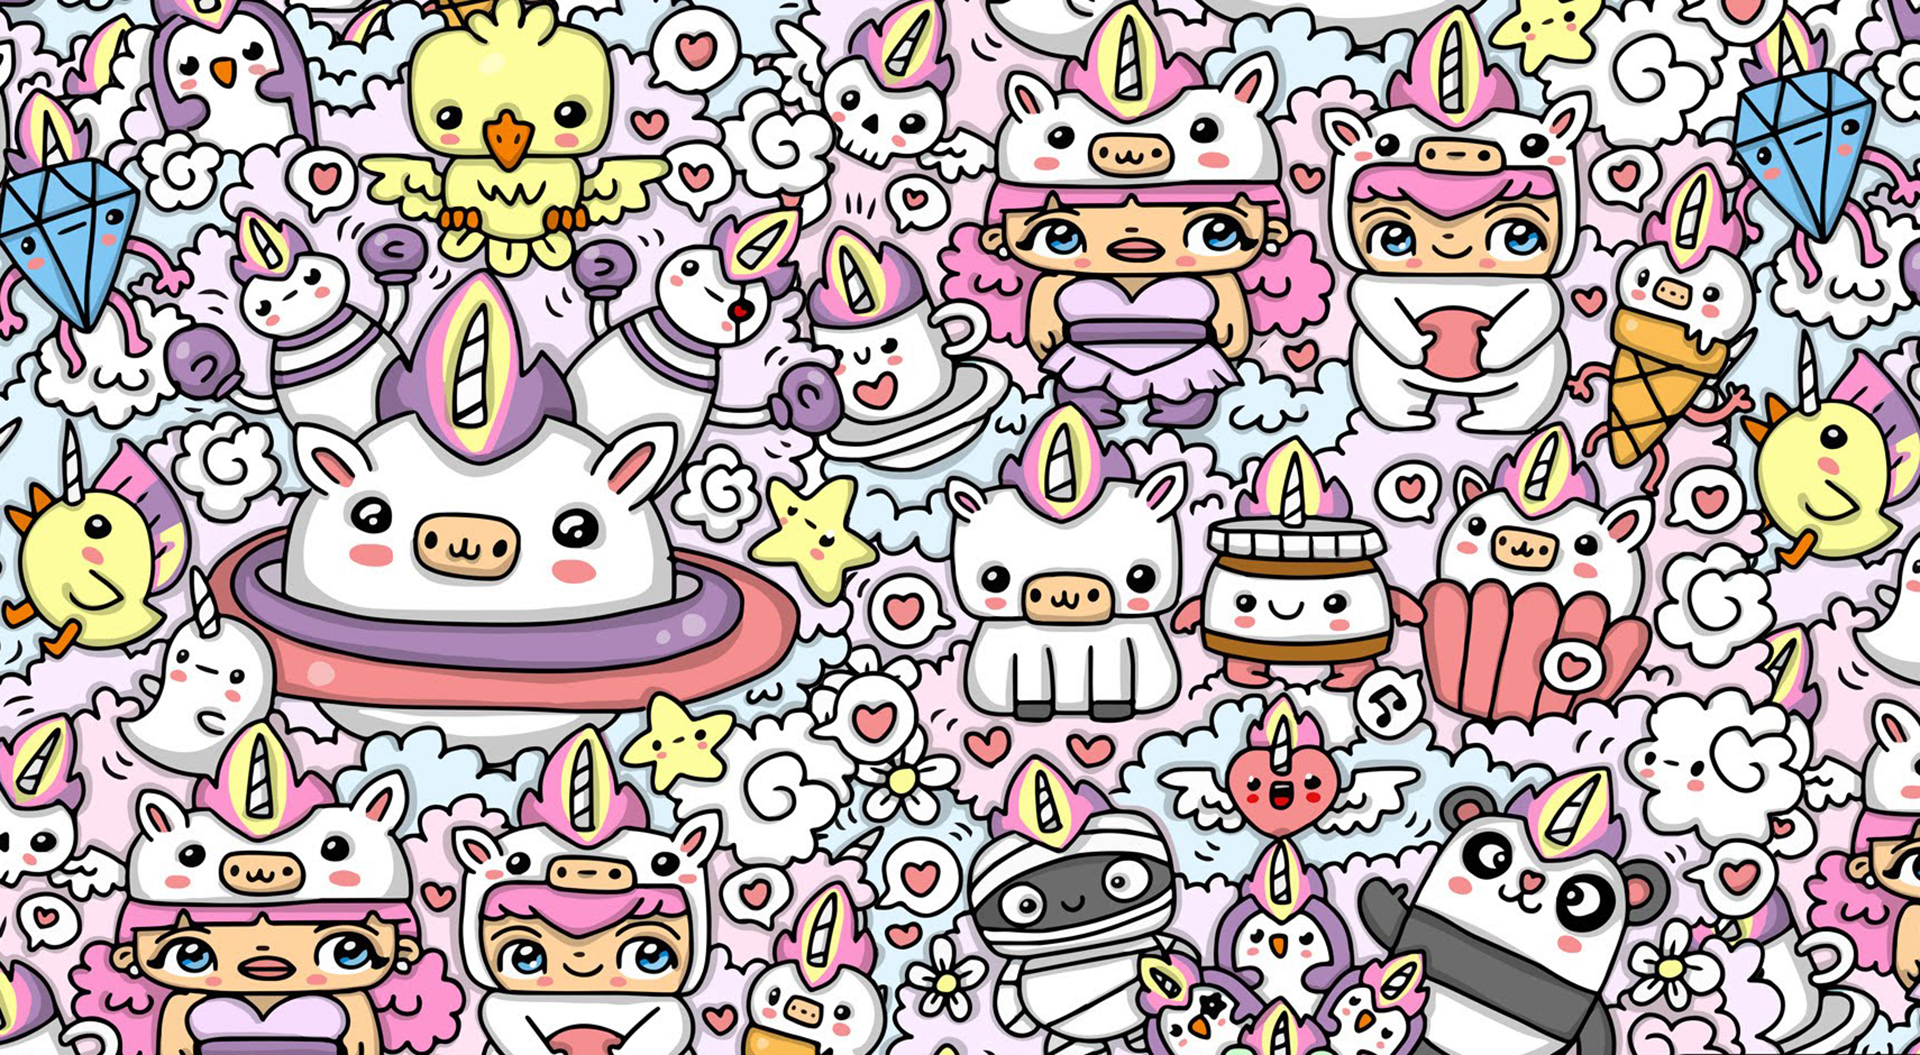 Doodle wallpapers free download pixelstalk net - Doodle desktop wallpaper ...